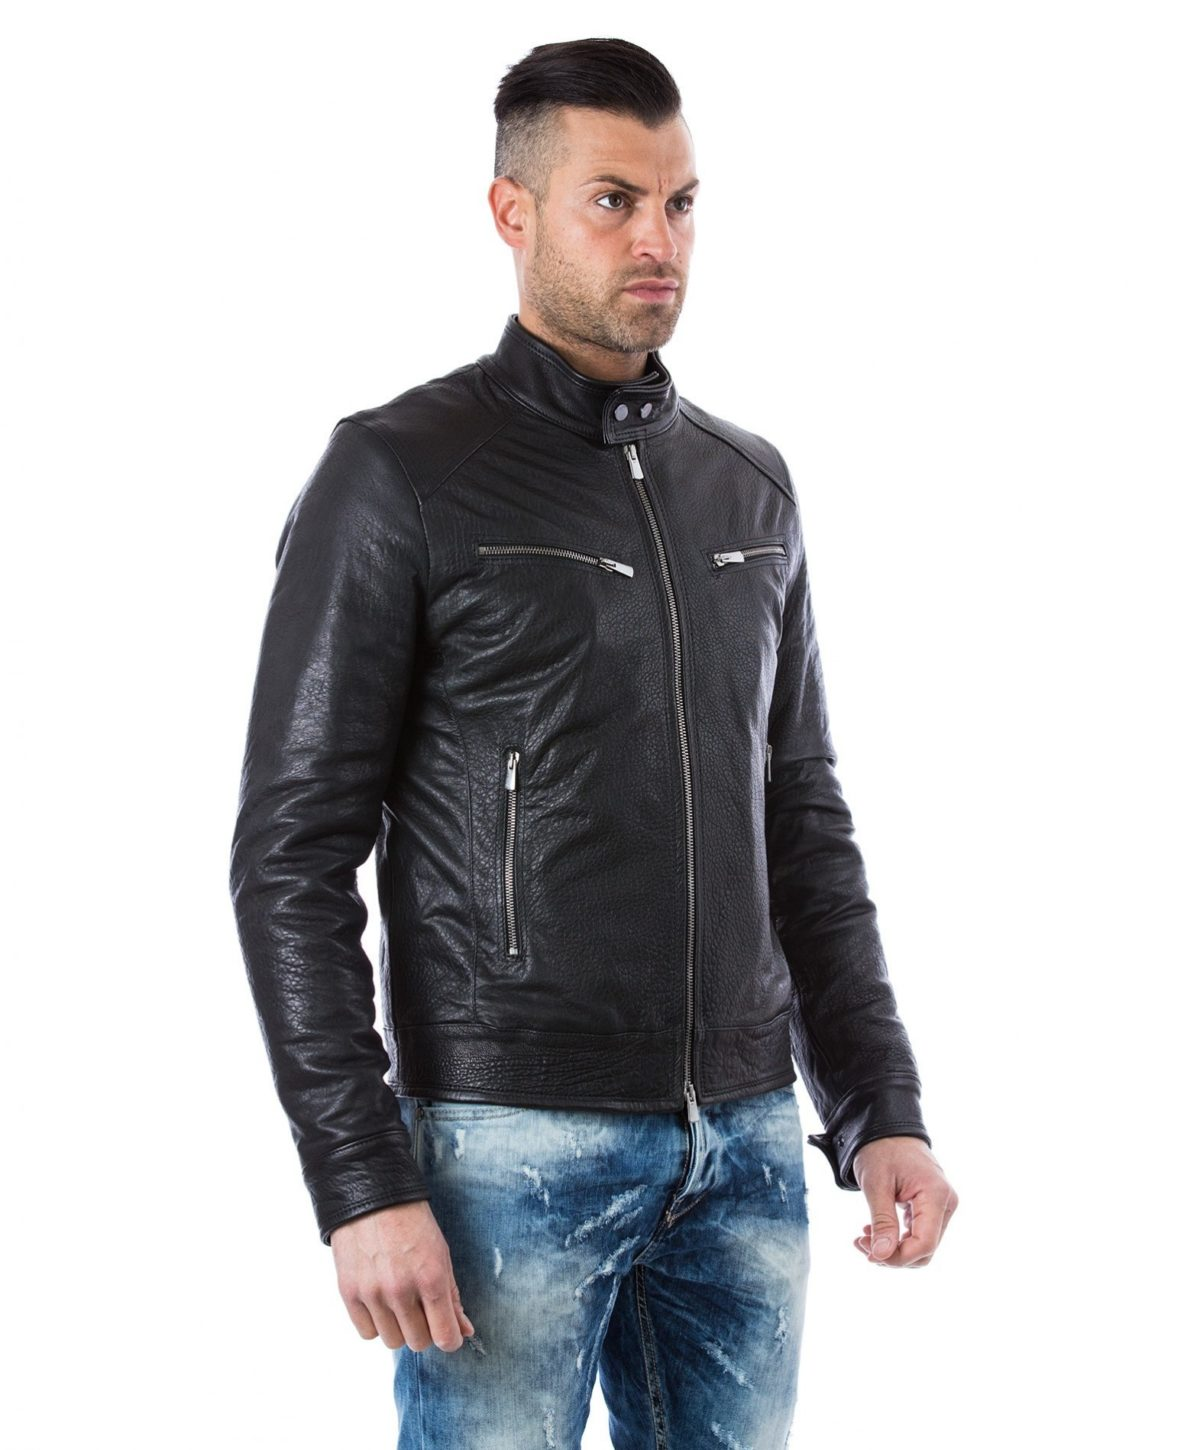 leather-jacket-genuine-calf-leather-biker-black-color-emiliany (1)